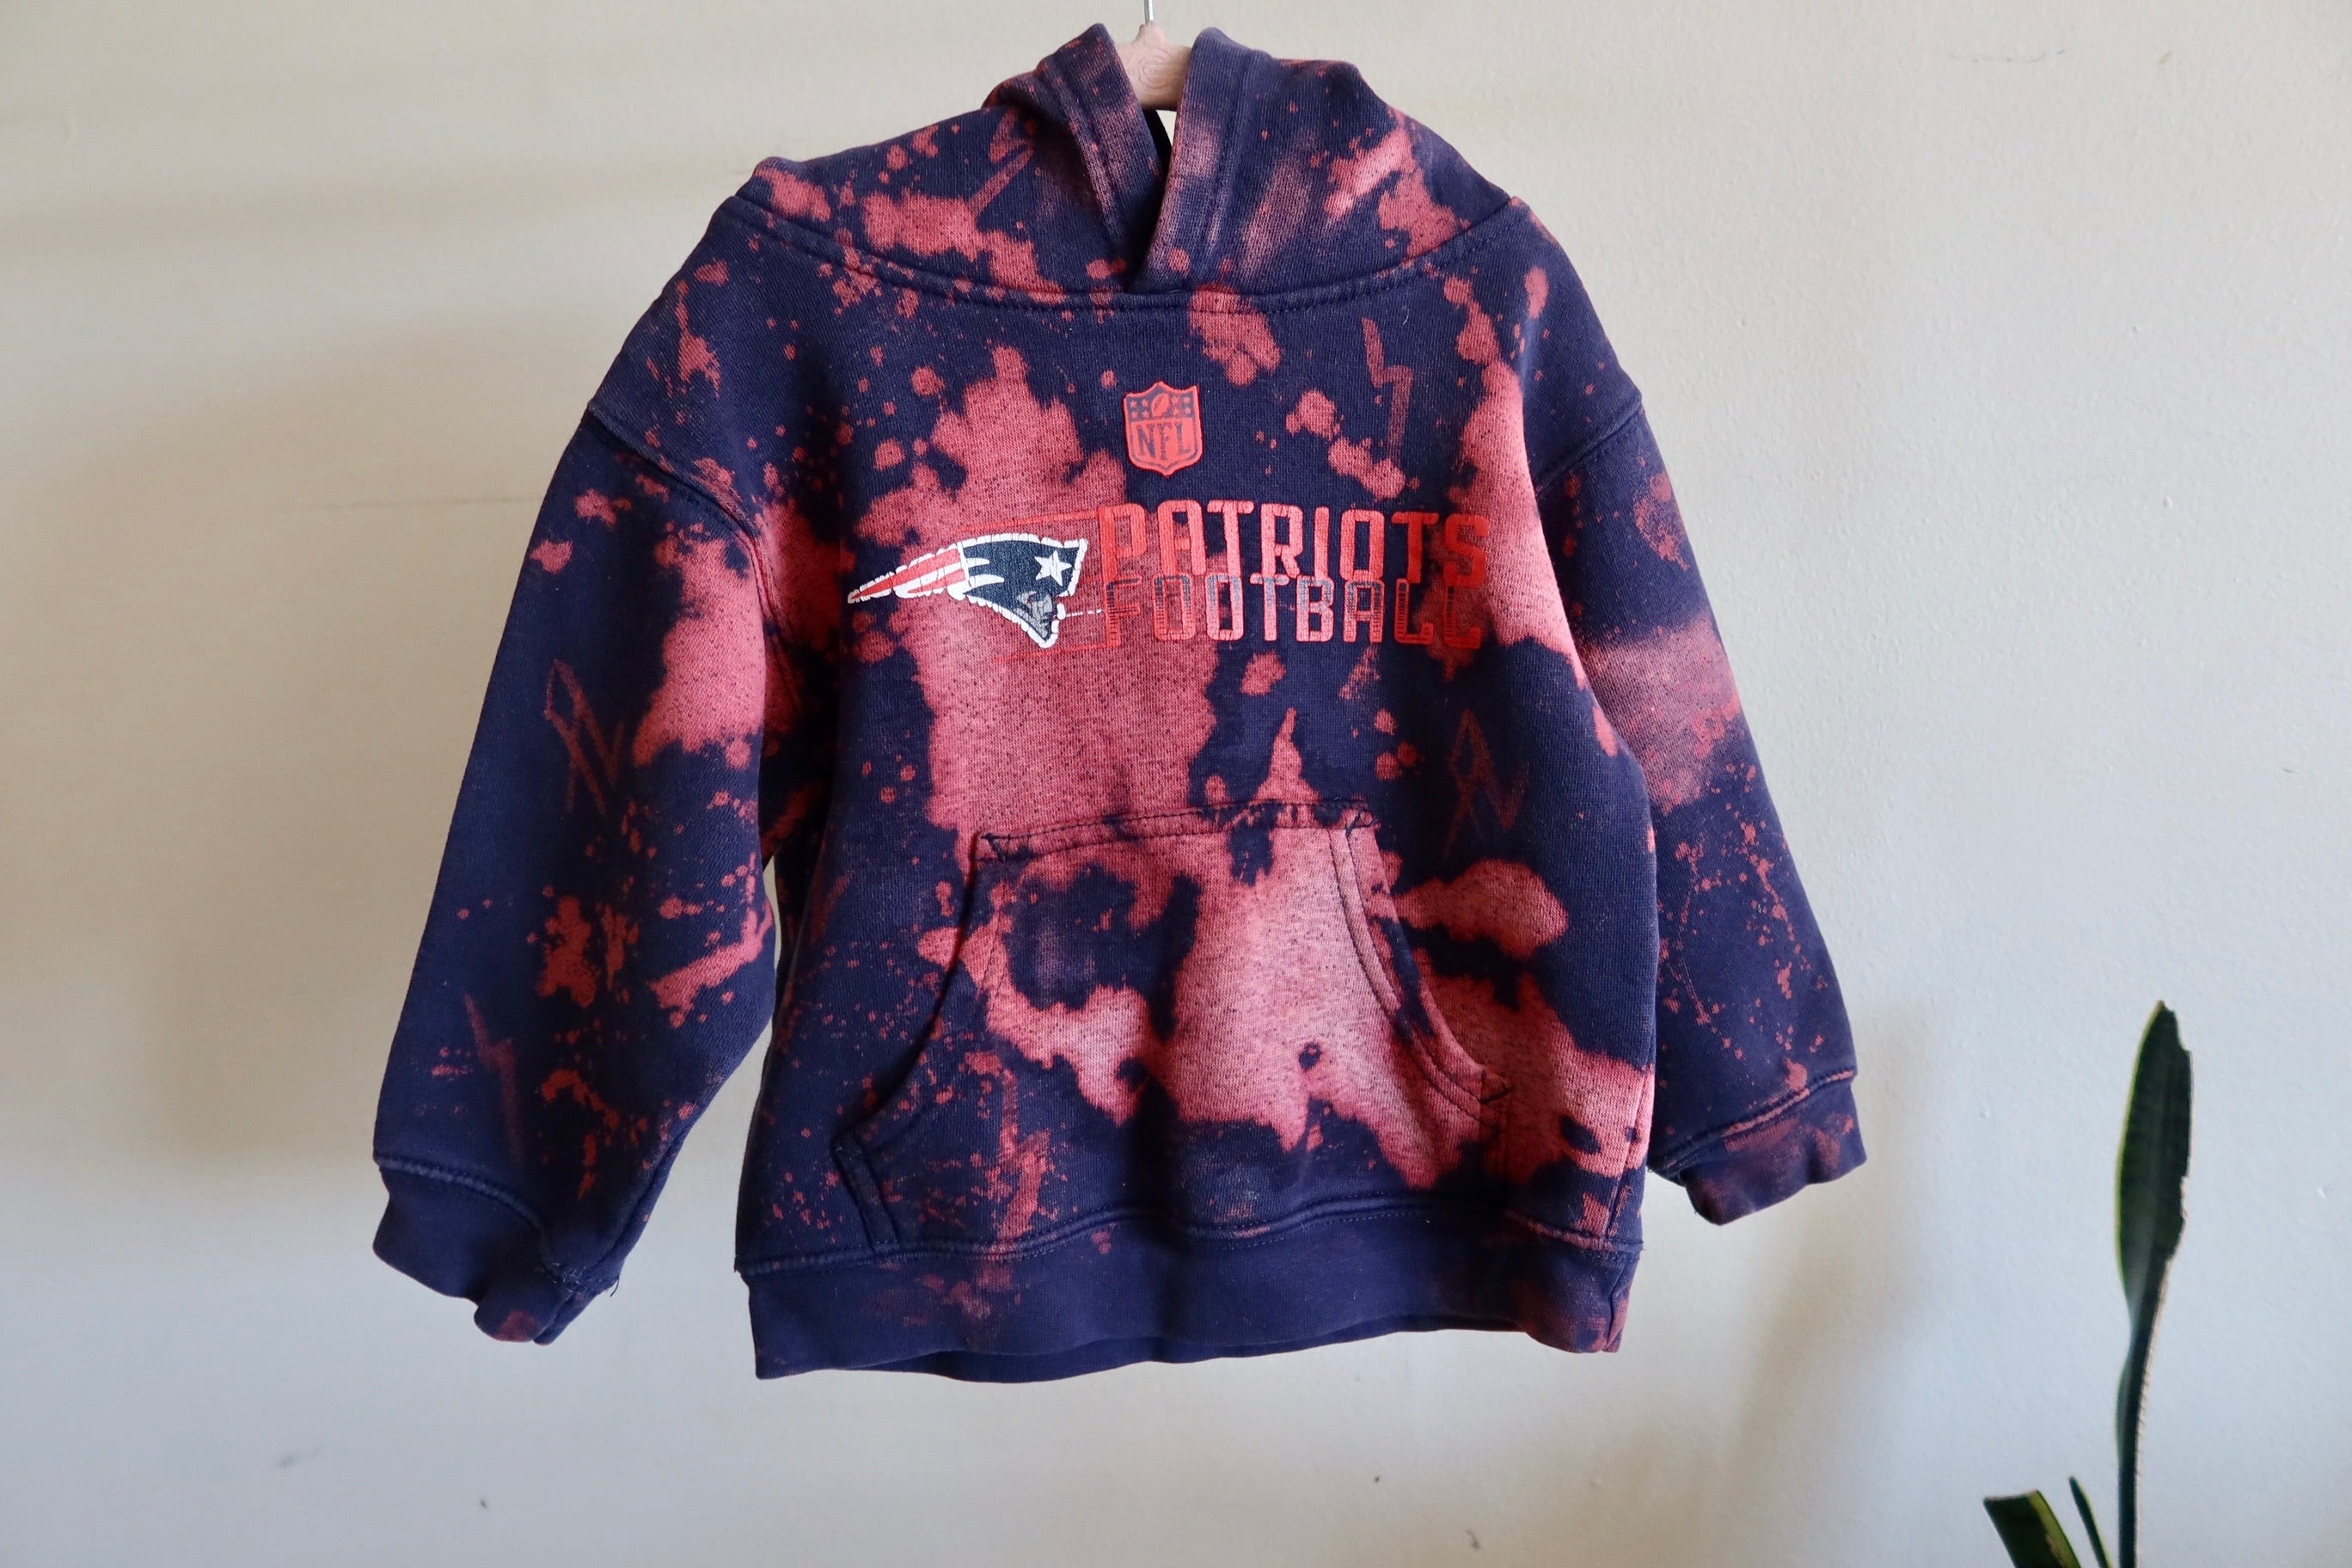 Pats kids sweatshirt I